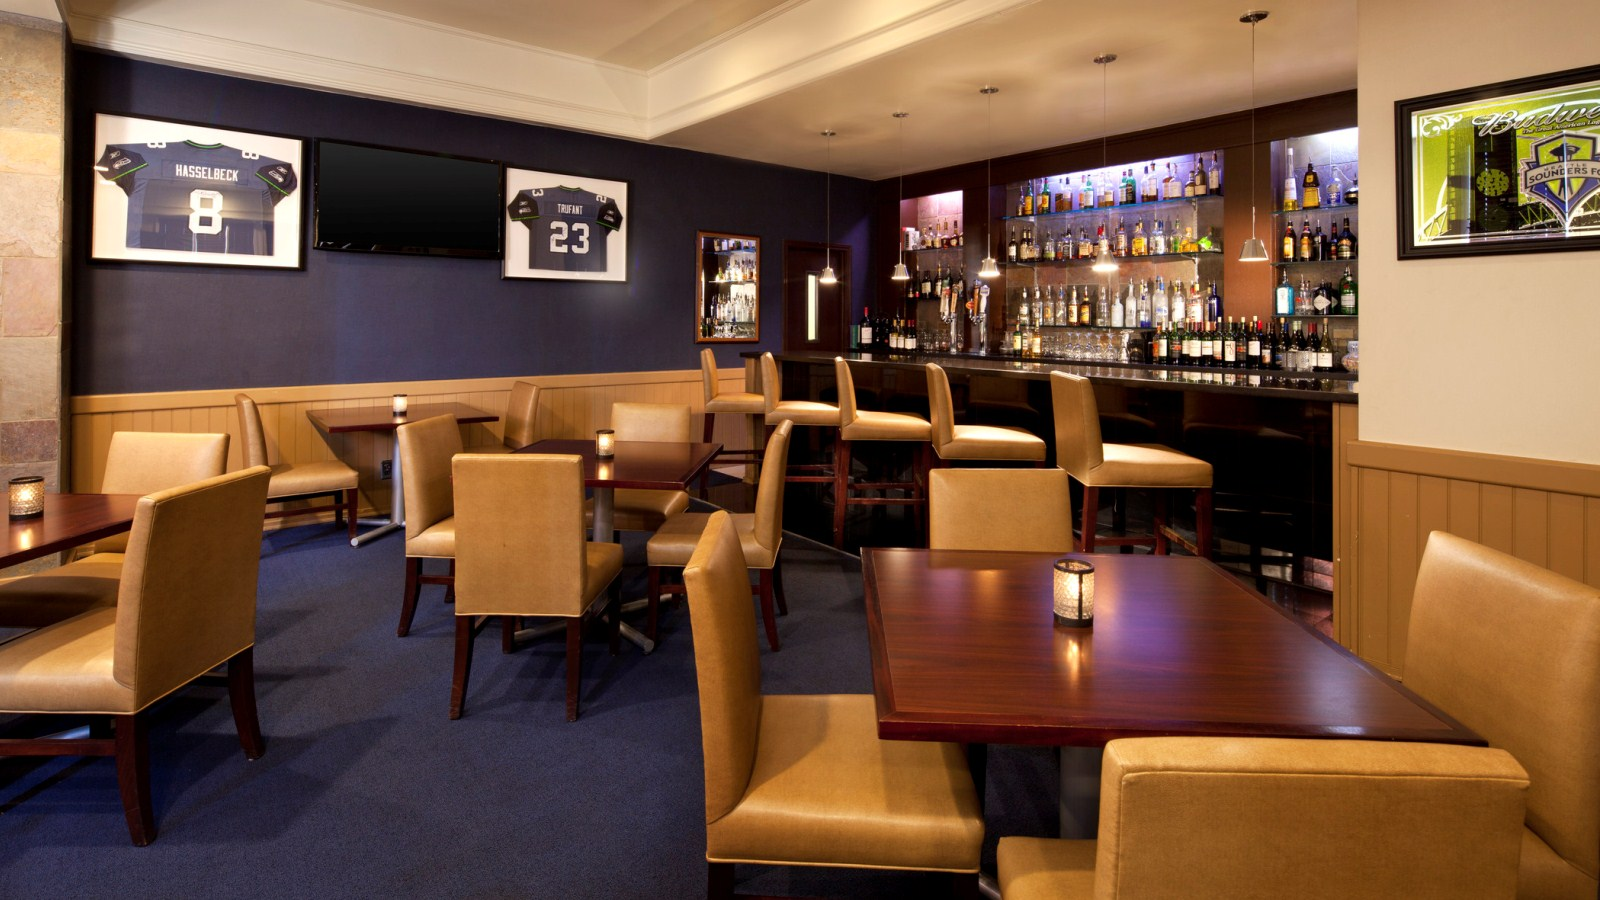 Meeting Space in Bellevue - Bellevue Grille